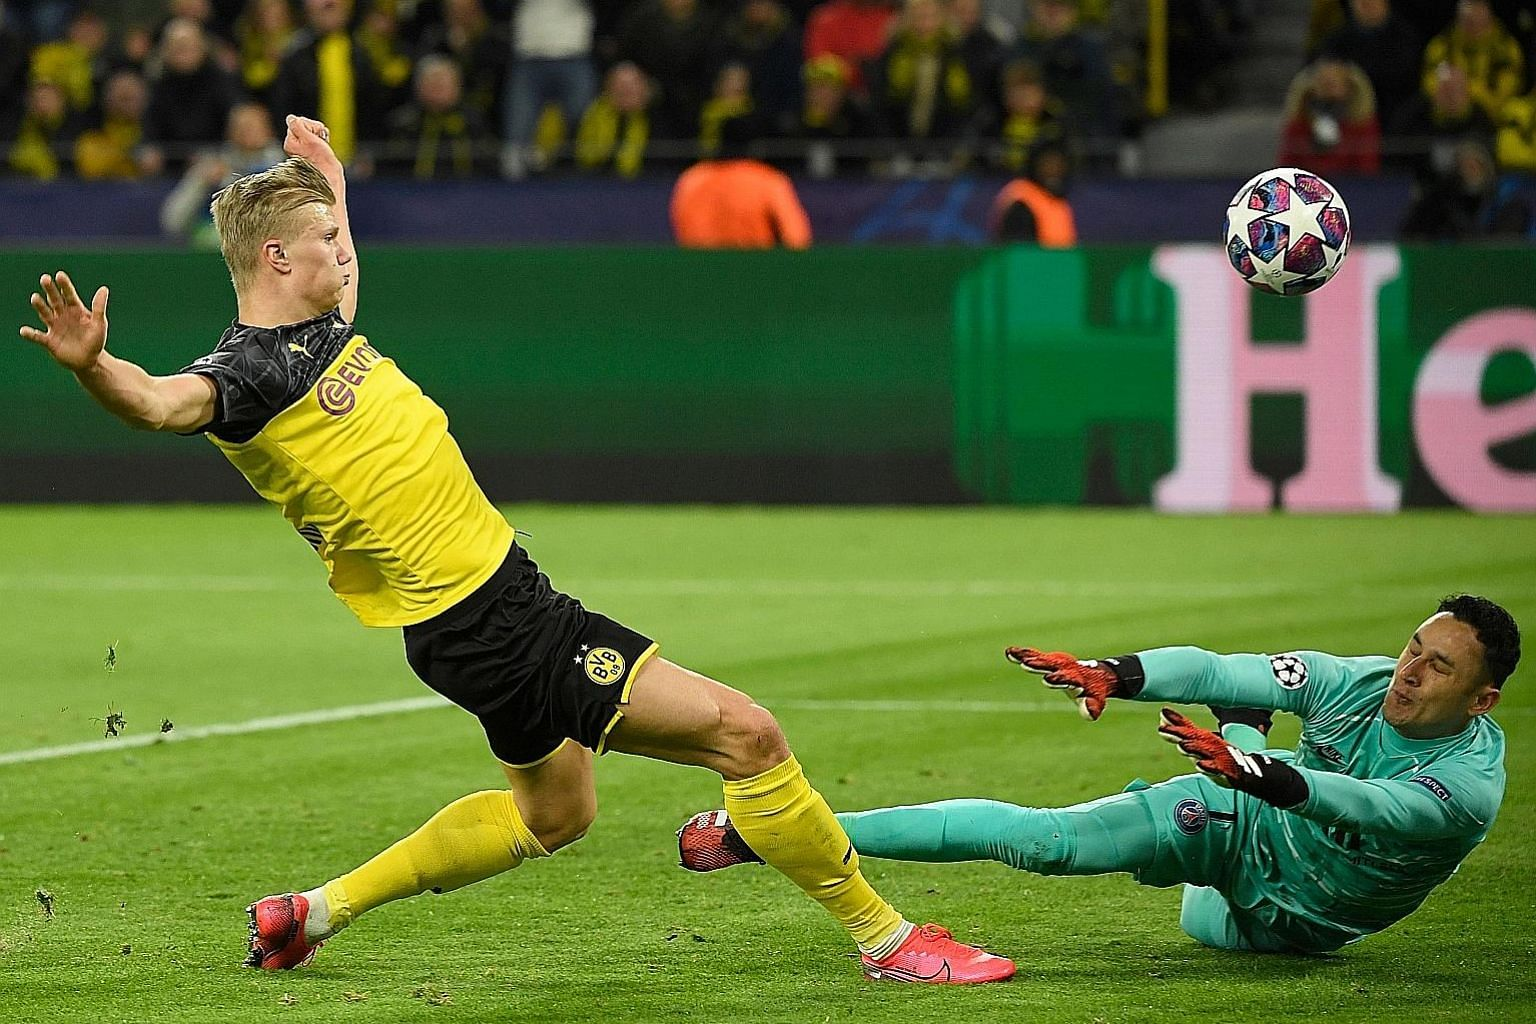 Erling Braut Haaland lifting the ball over PSG goalkeeper Keylor Navas to score the first goal. Dortmund have the edge in the tie after the Norwegian teenager's two goals. PHOTO: AGENCE FRANCE-PRESSE